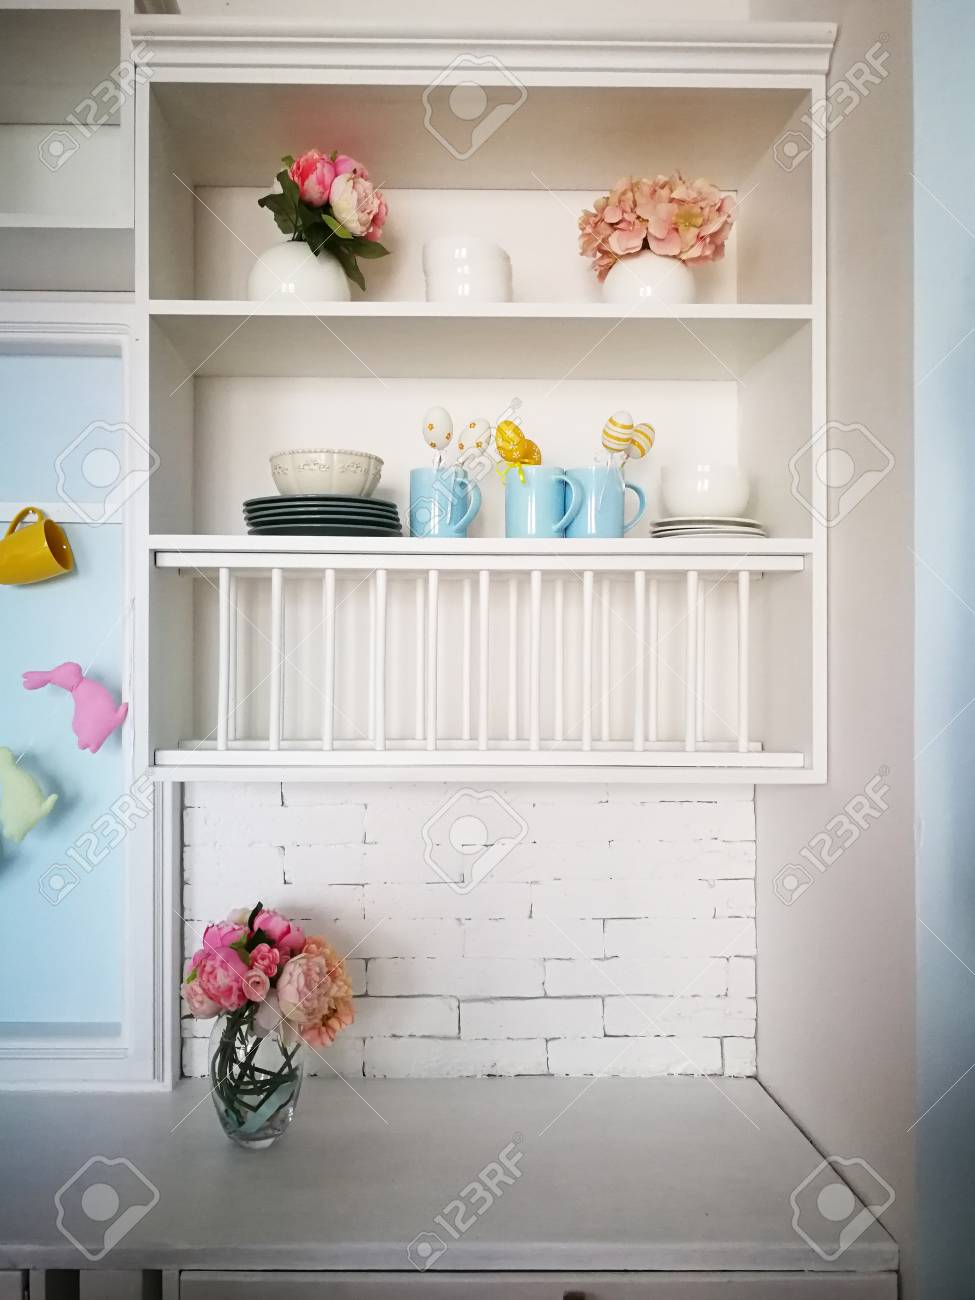 Kitchen Shelves With Easter Decor